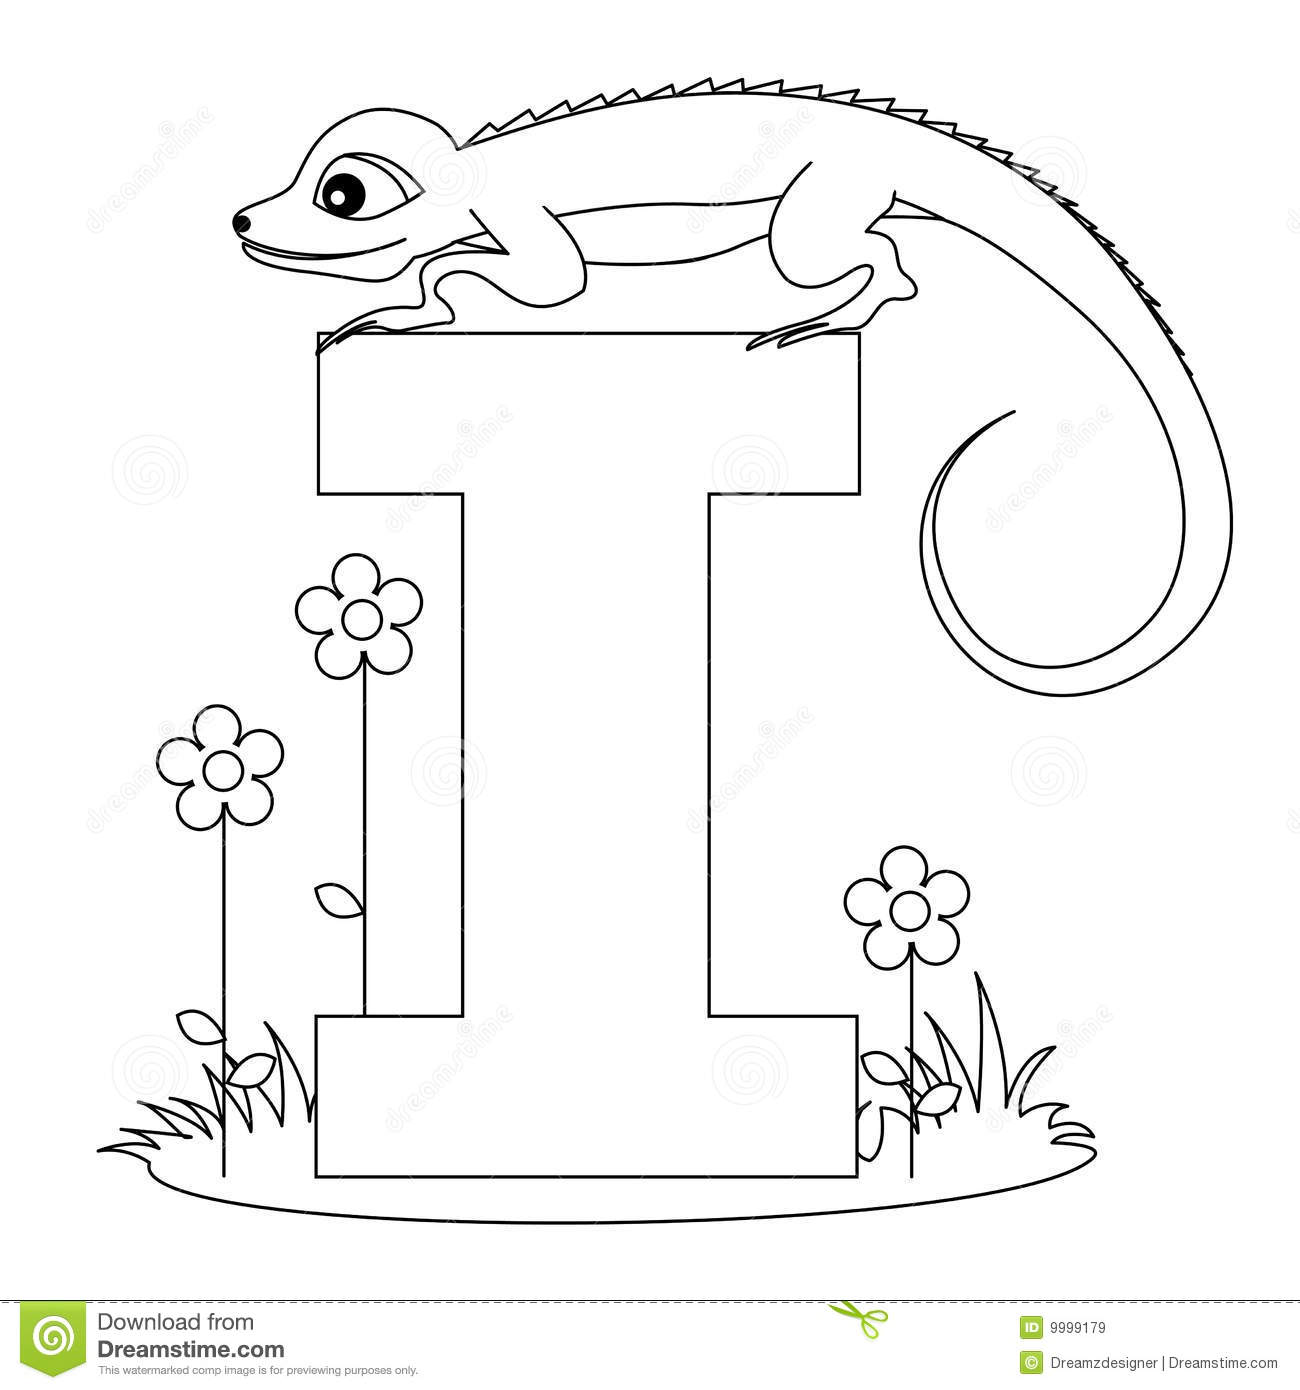 Animal Alphabet I Coloring Page Royalty Free Stock Images